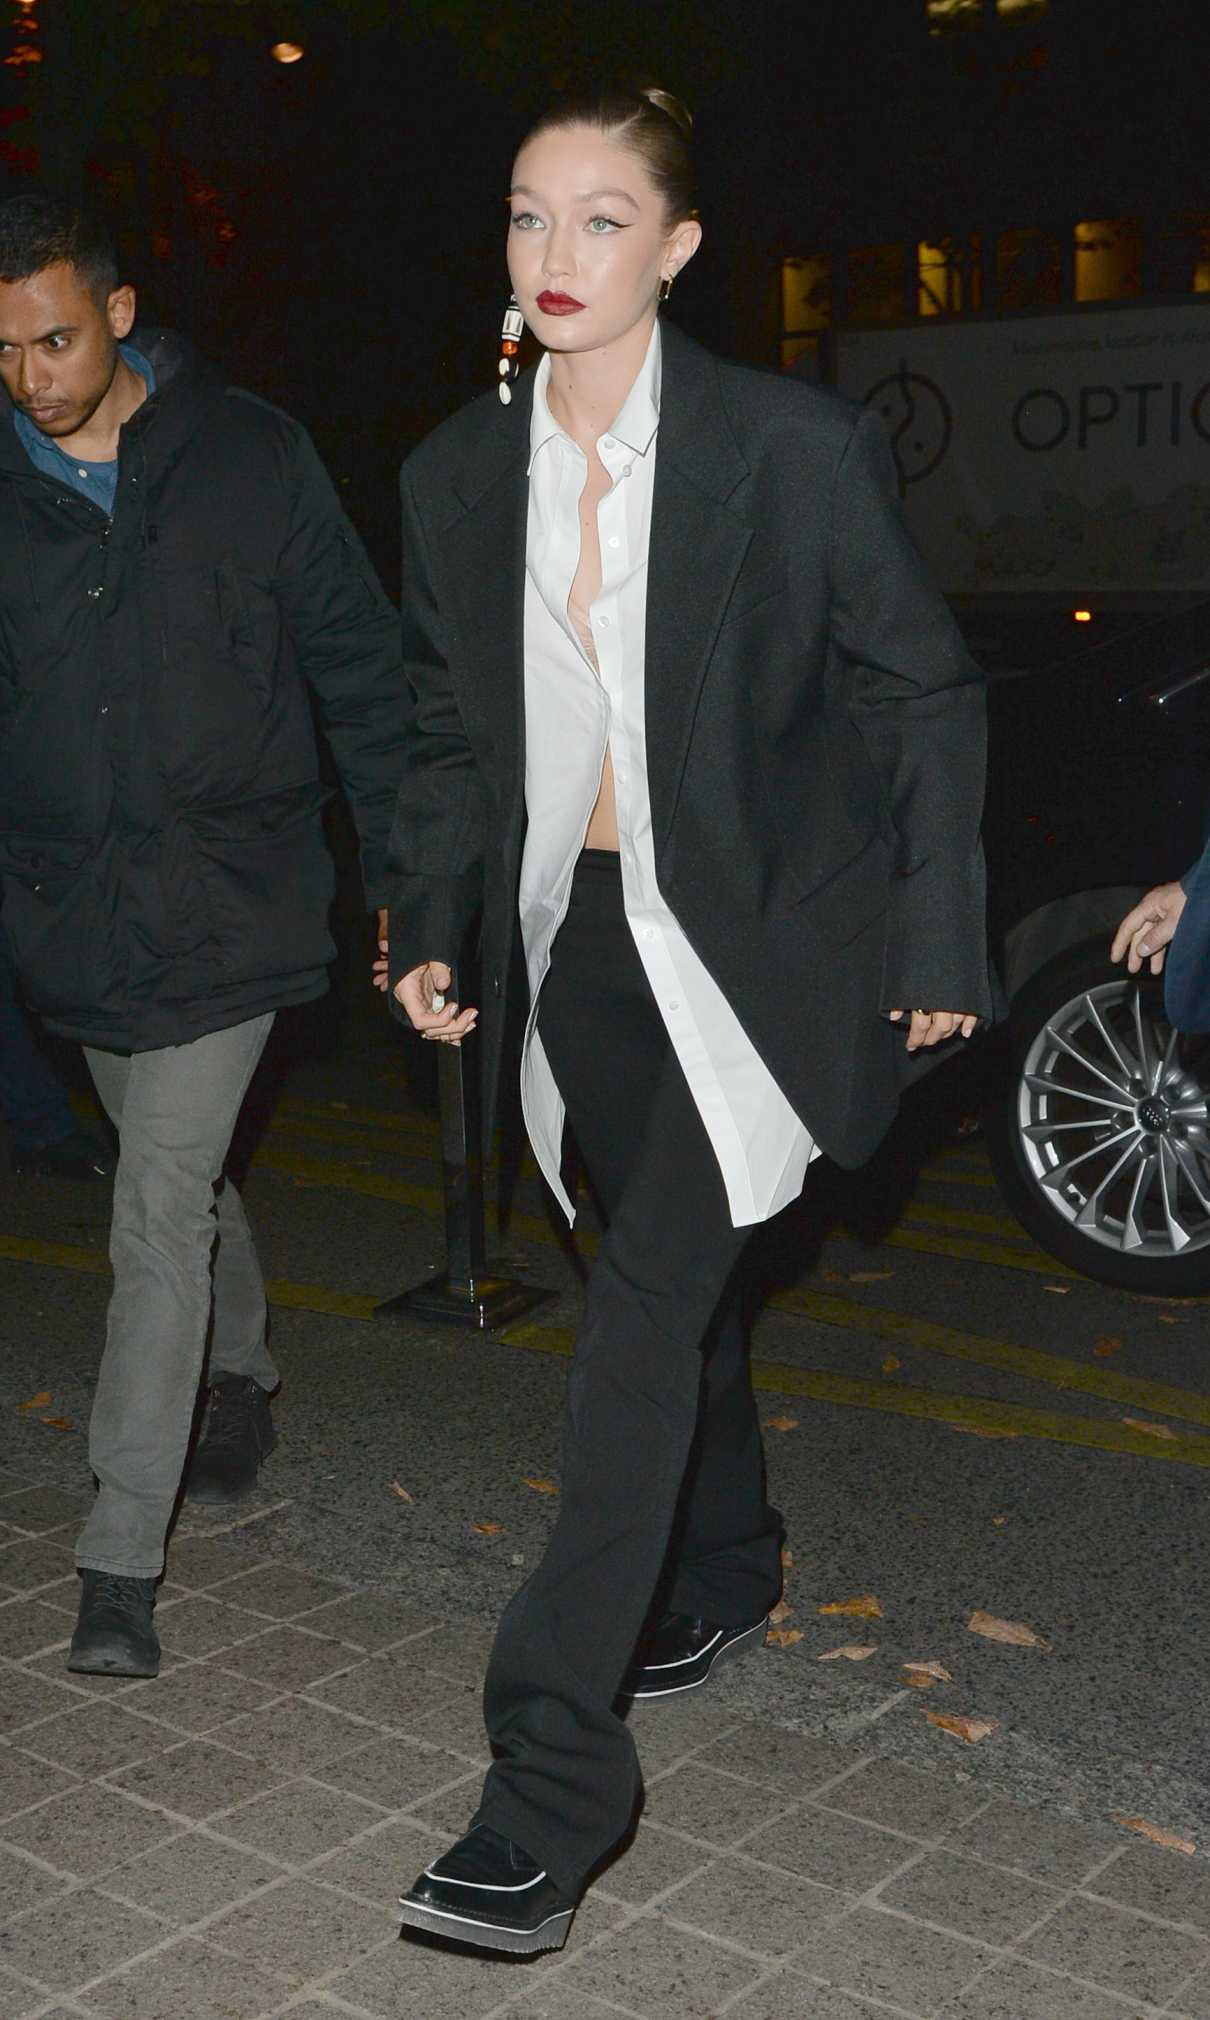 Gigi Hadid in a Black Blazer